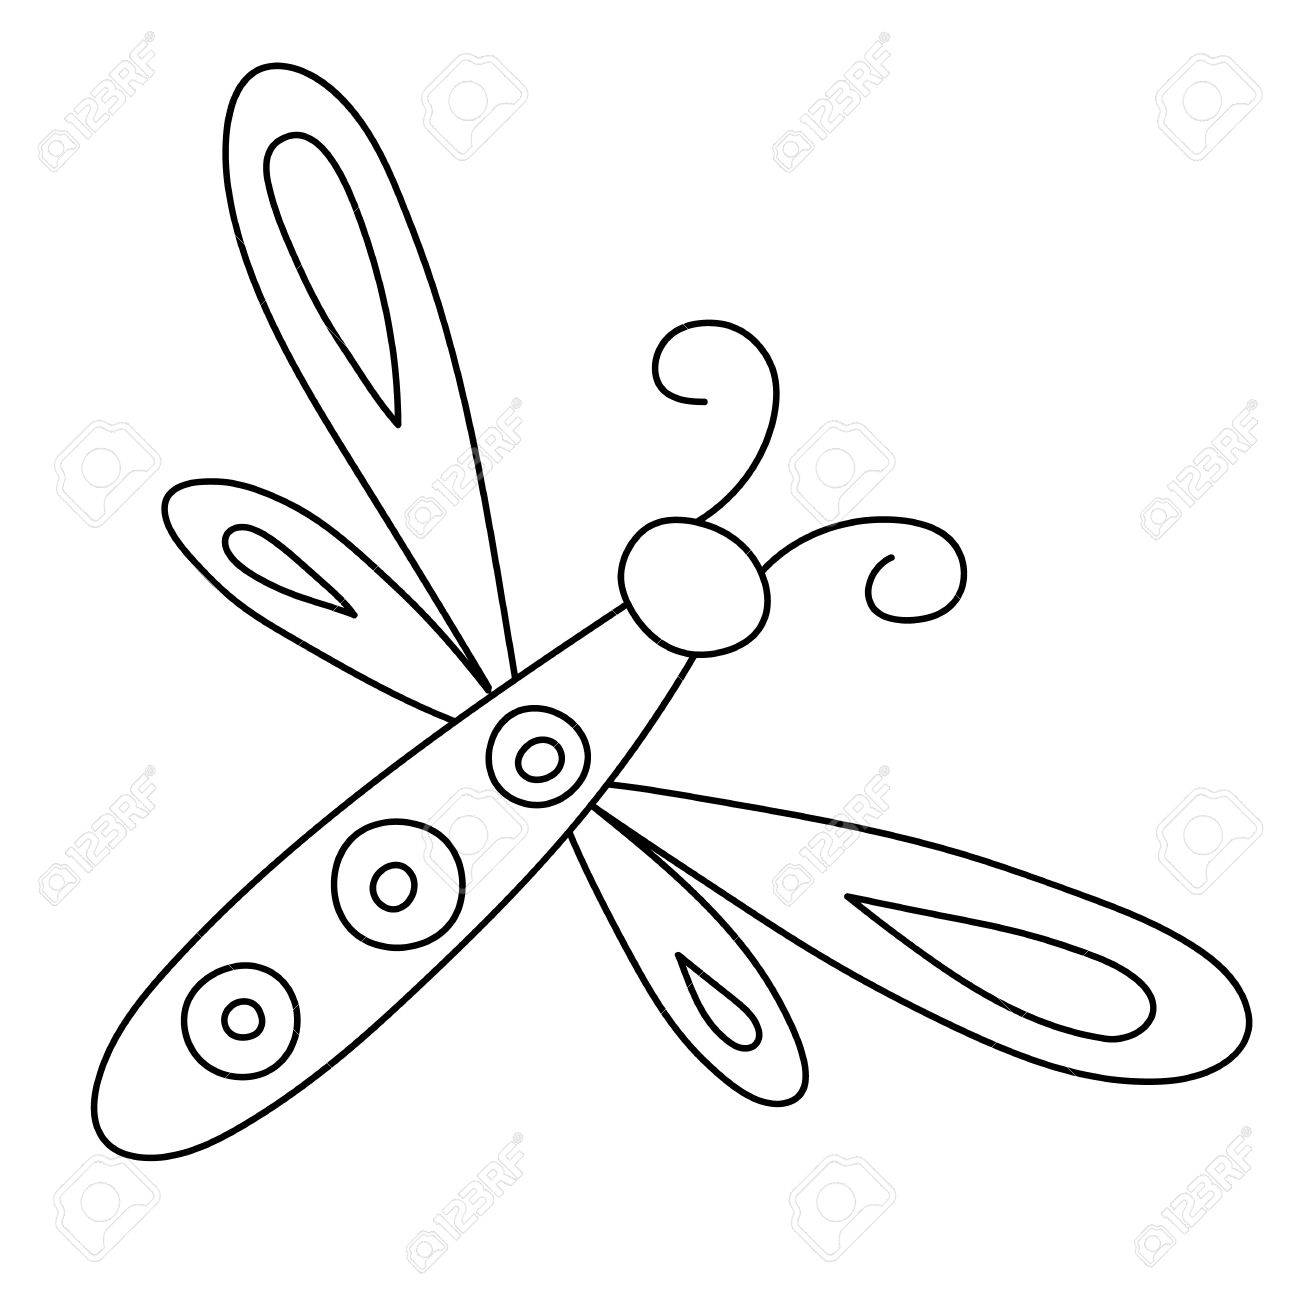 1300x1300 Outlined Hand Drawn Dragonfly Royalty Free Cliparts, Vectors,